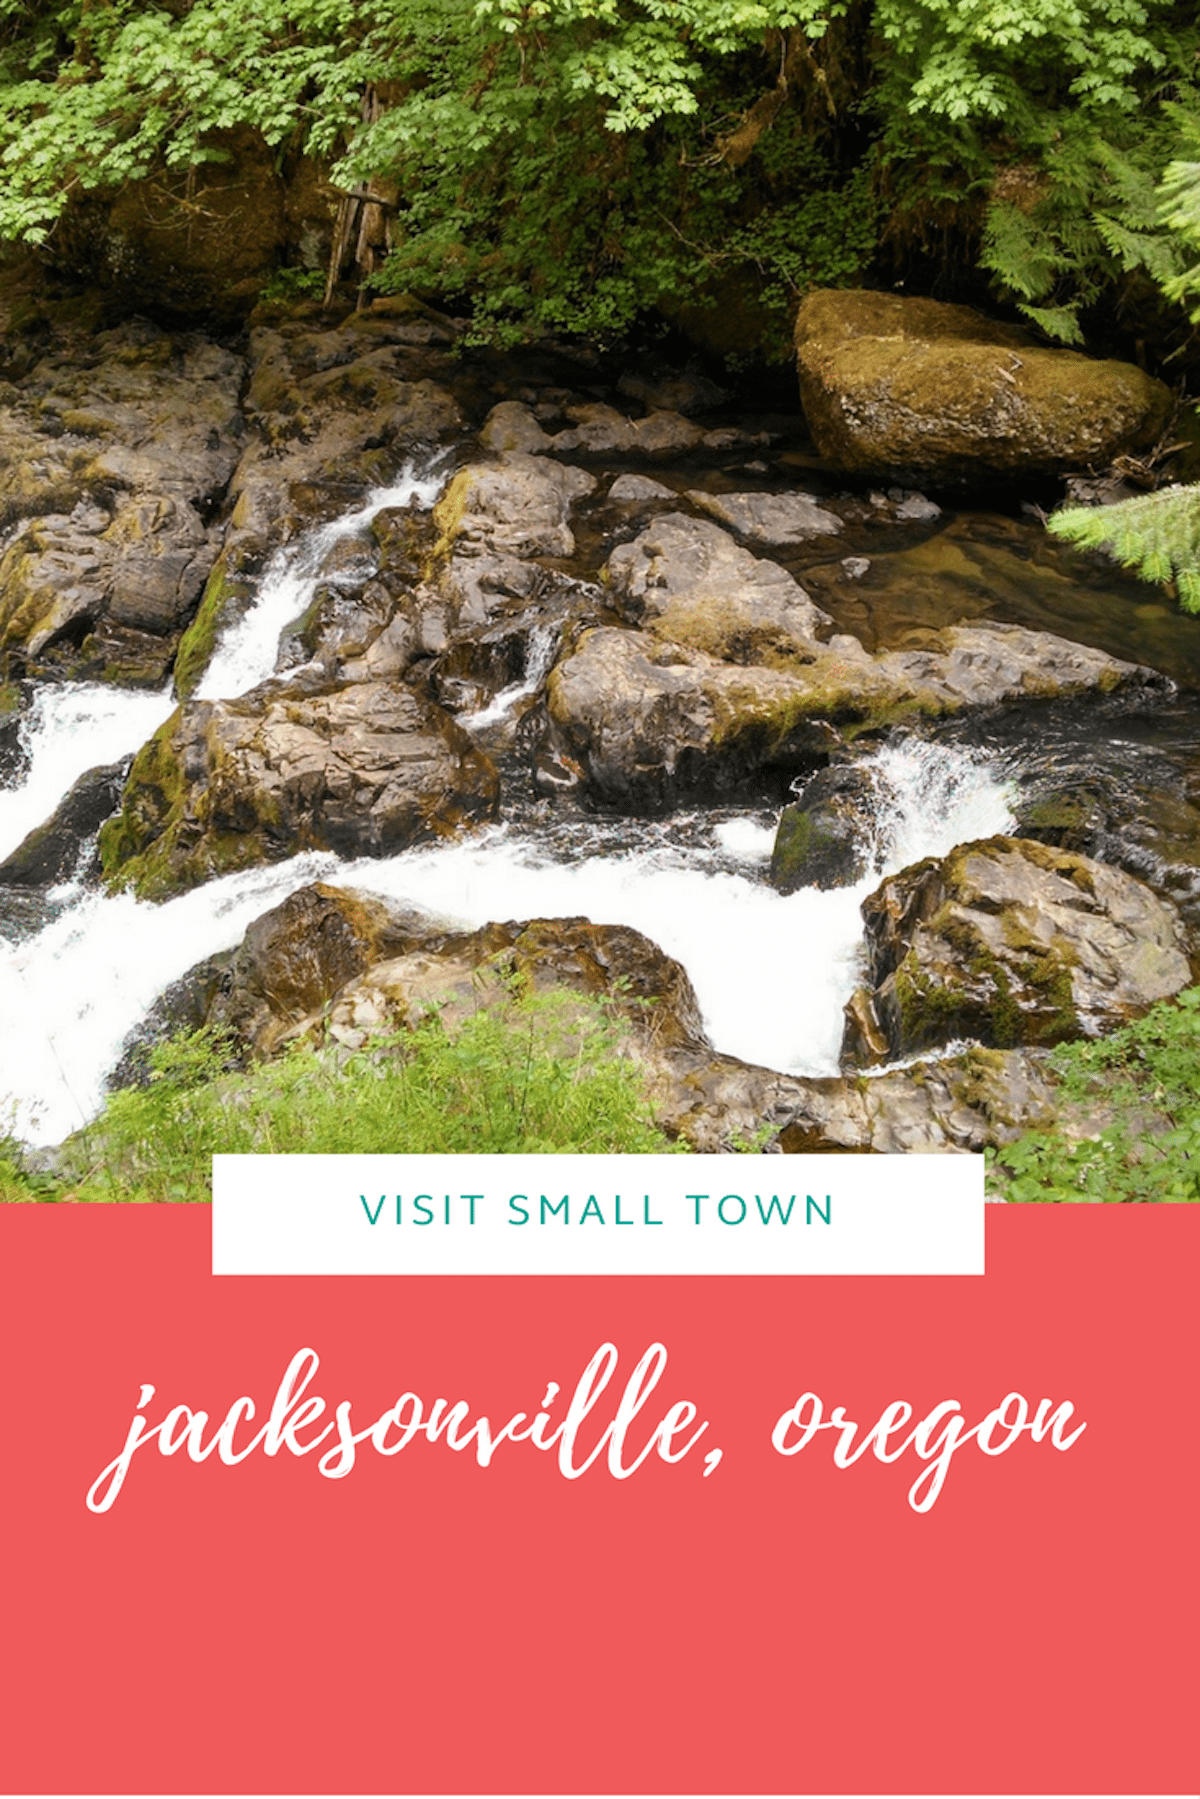 Much of Jacksonville is preserved as a National Historic Landmark, and this is a cool location for those seeking a quiet adventure.